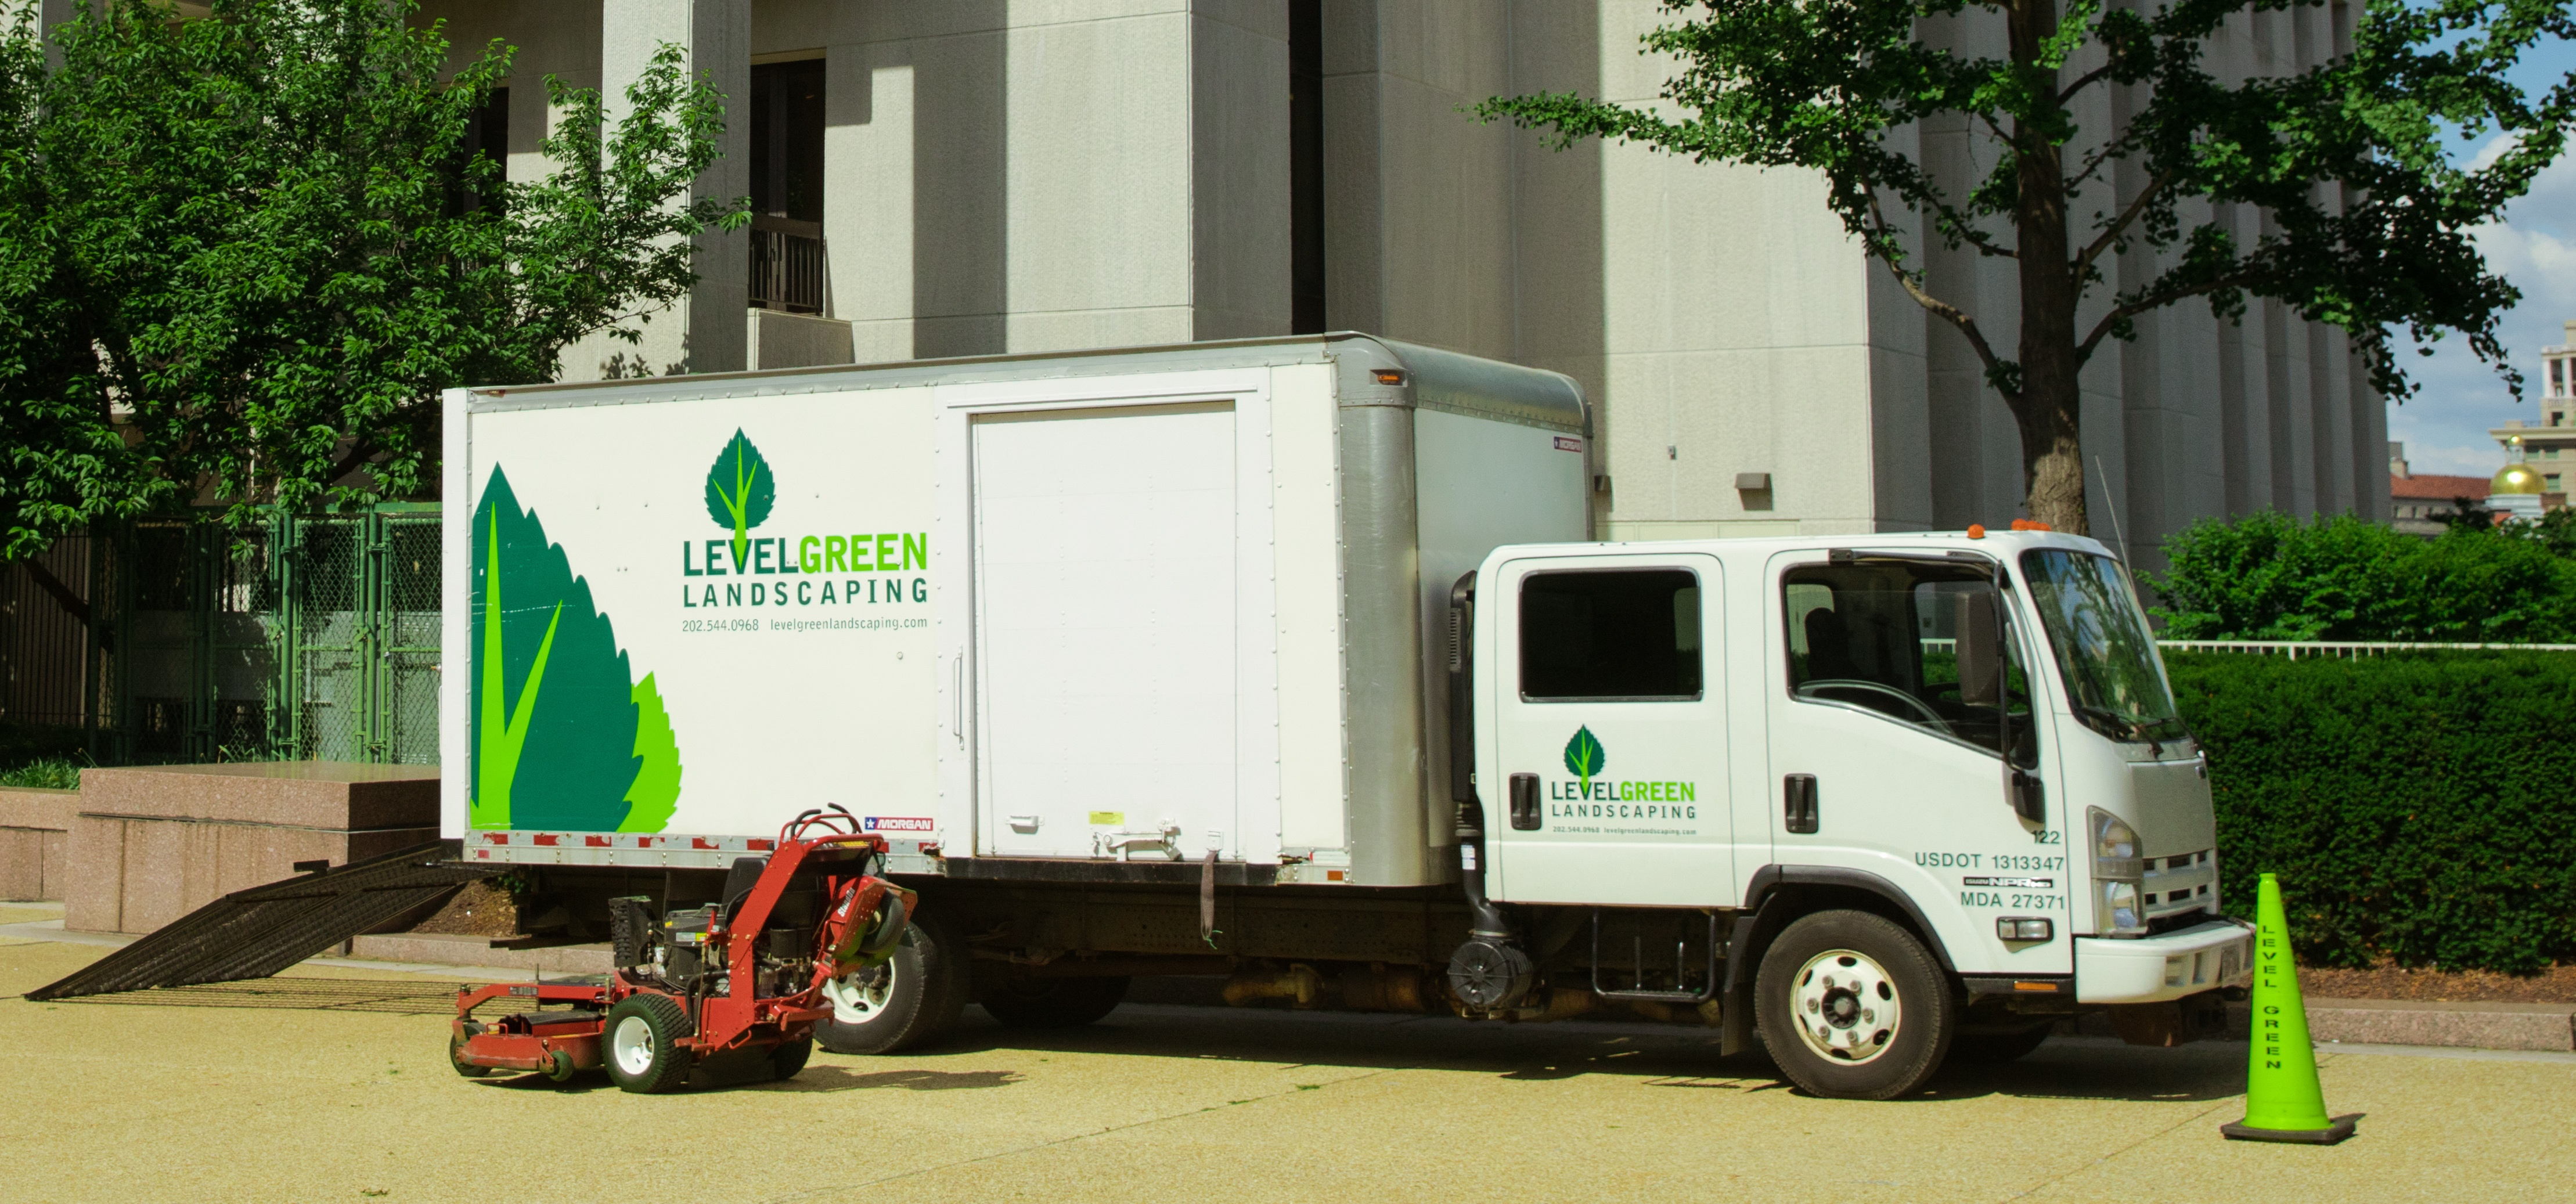 Example of box truck wrap on landscaping truck.